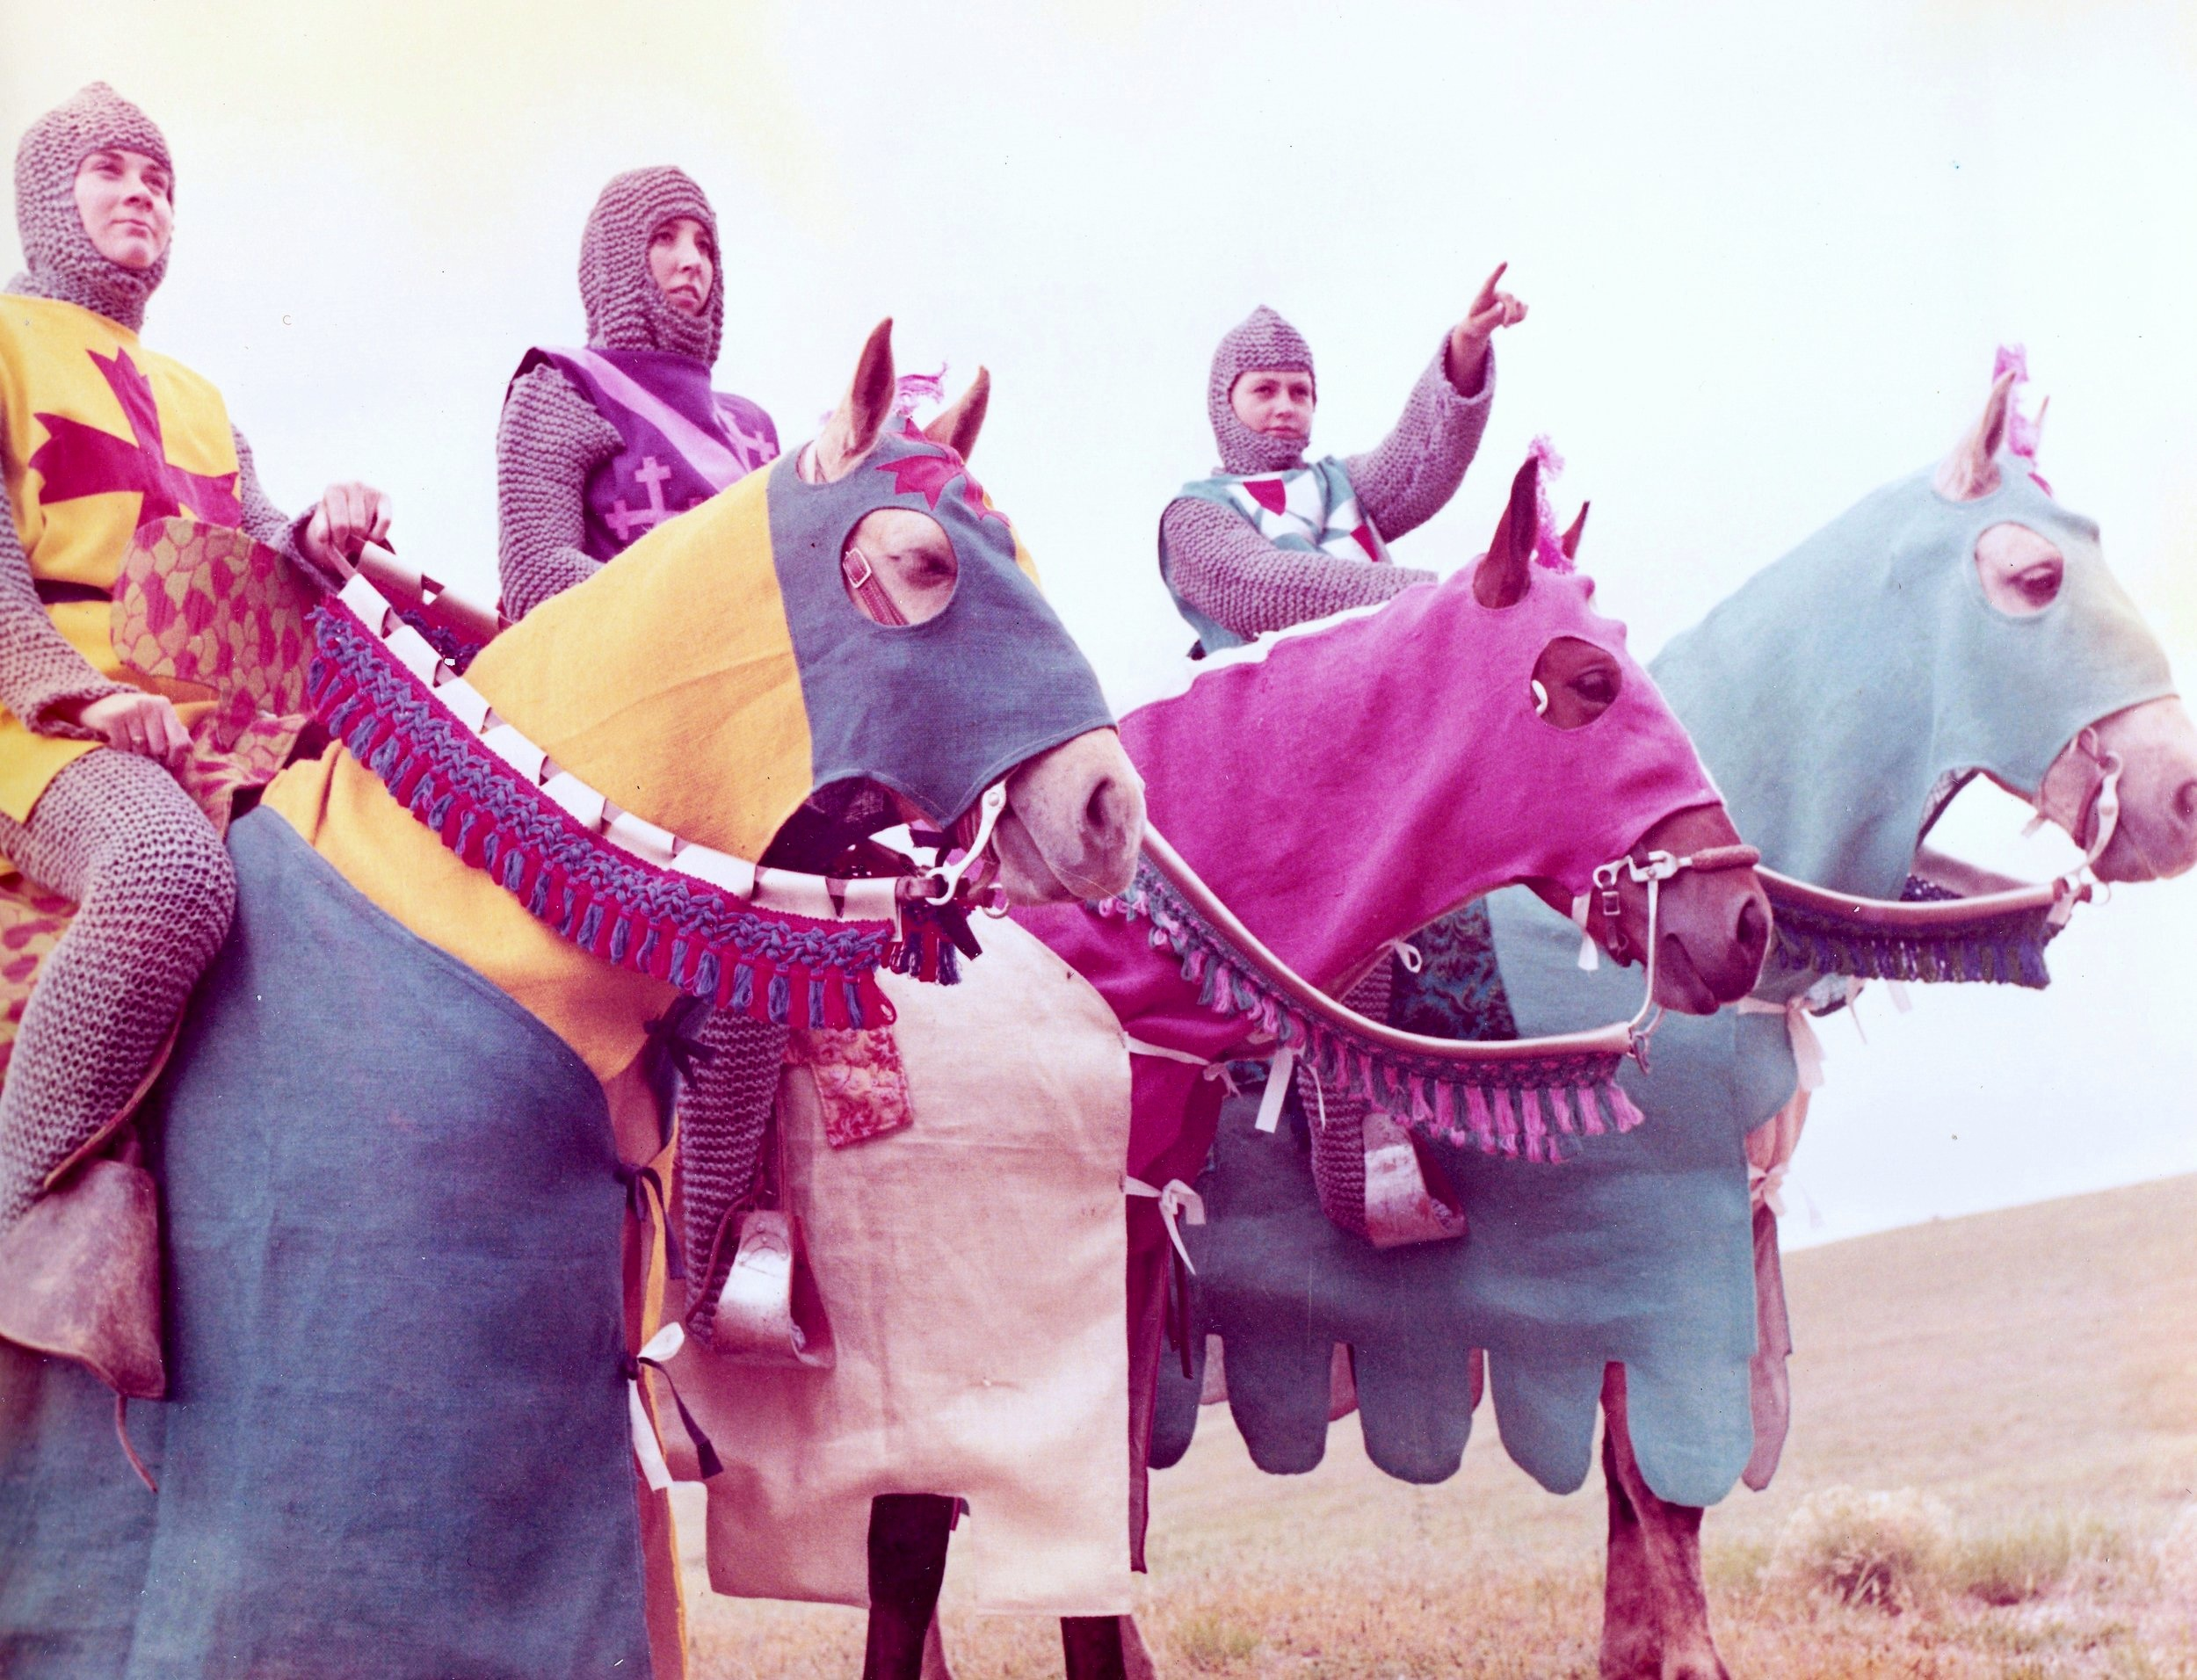 Westernaires riders Lib Clement, Mari Stannard, and Sharon Easley on Green Mountain in their Camelot costumes. In this shot one can see the detailed work that went into designing the jousting saddles, rider costuming, and horse costuming.